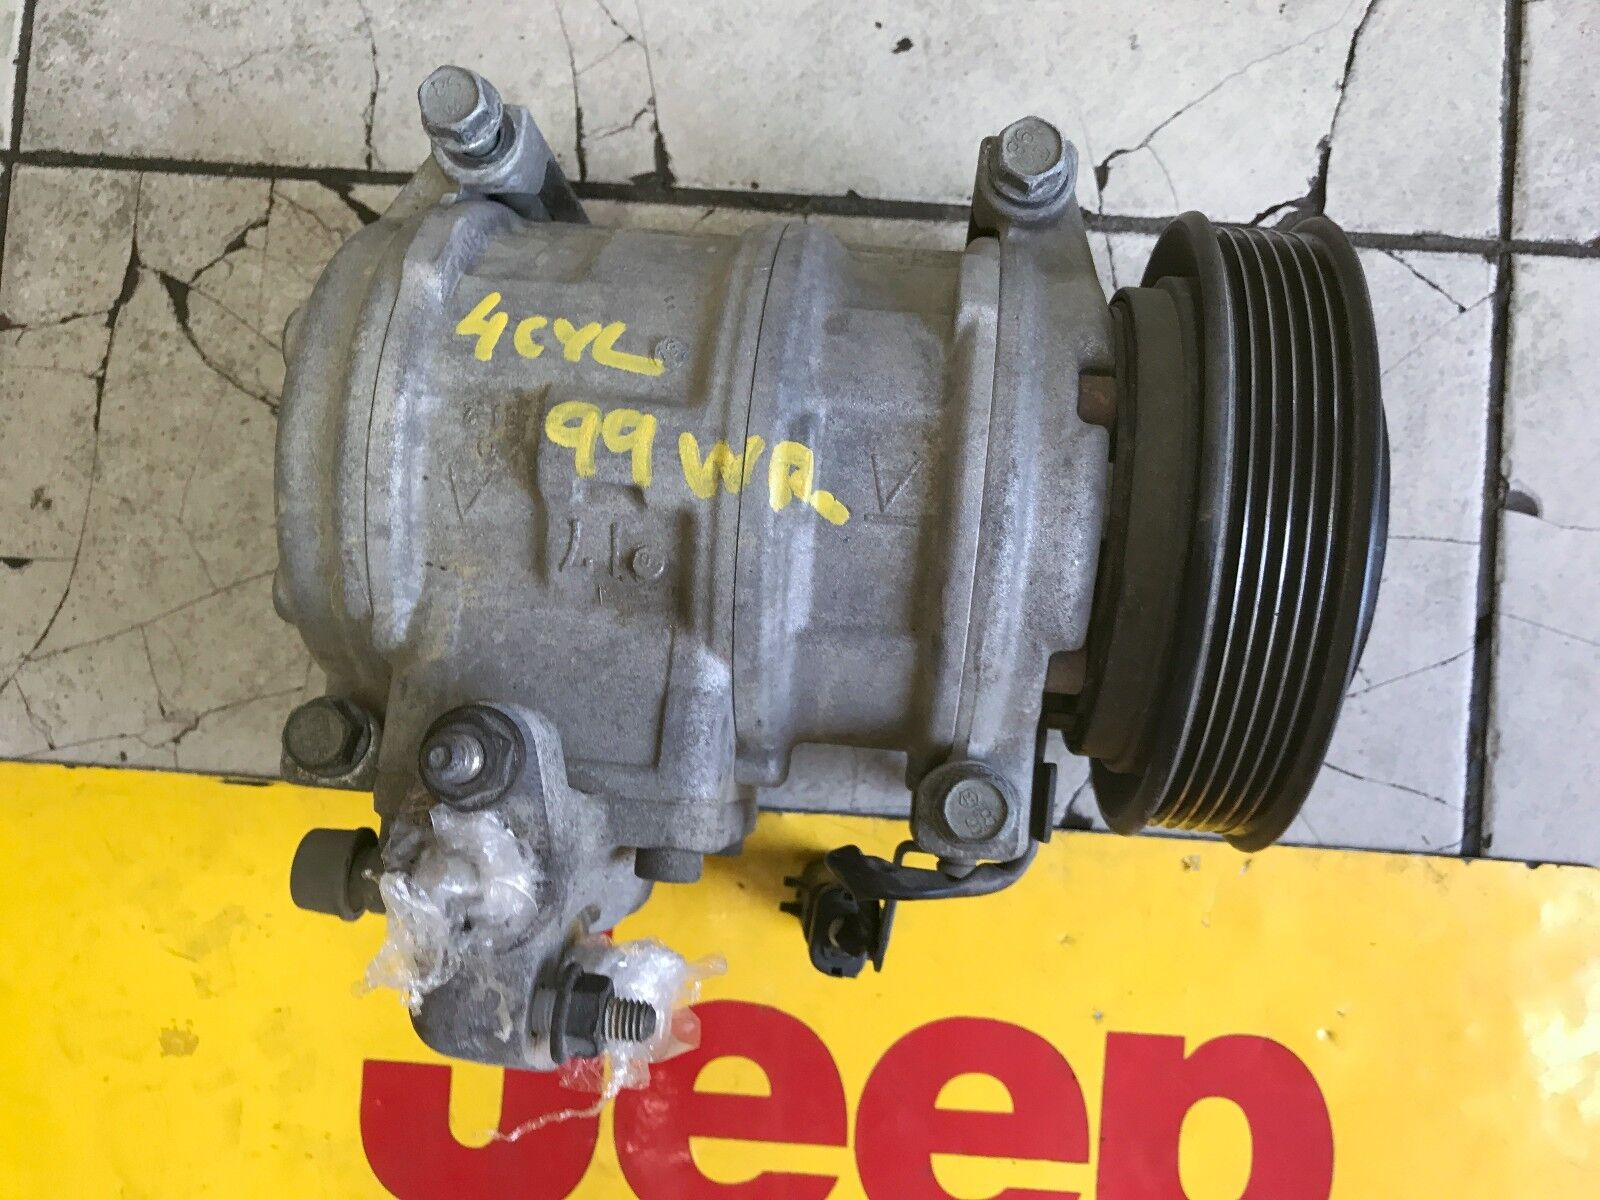 Used 1999 Jeep Wrangler Air Conditioning And Heater Parts For Sale Tj Box Wiring Harness Fan Relay 40l A C Pump Oem